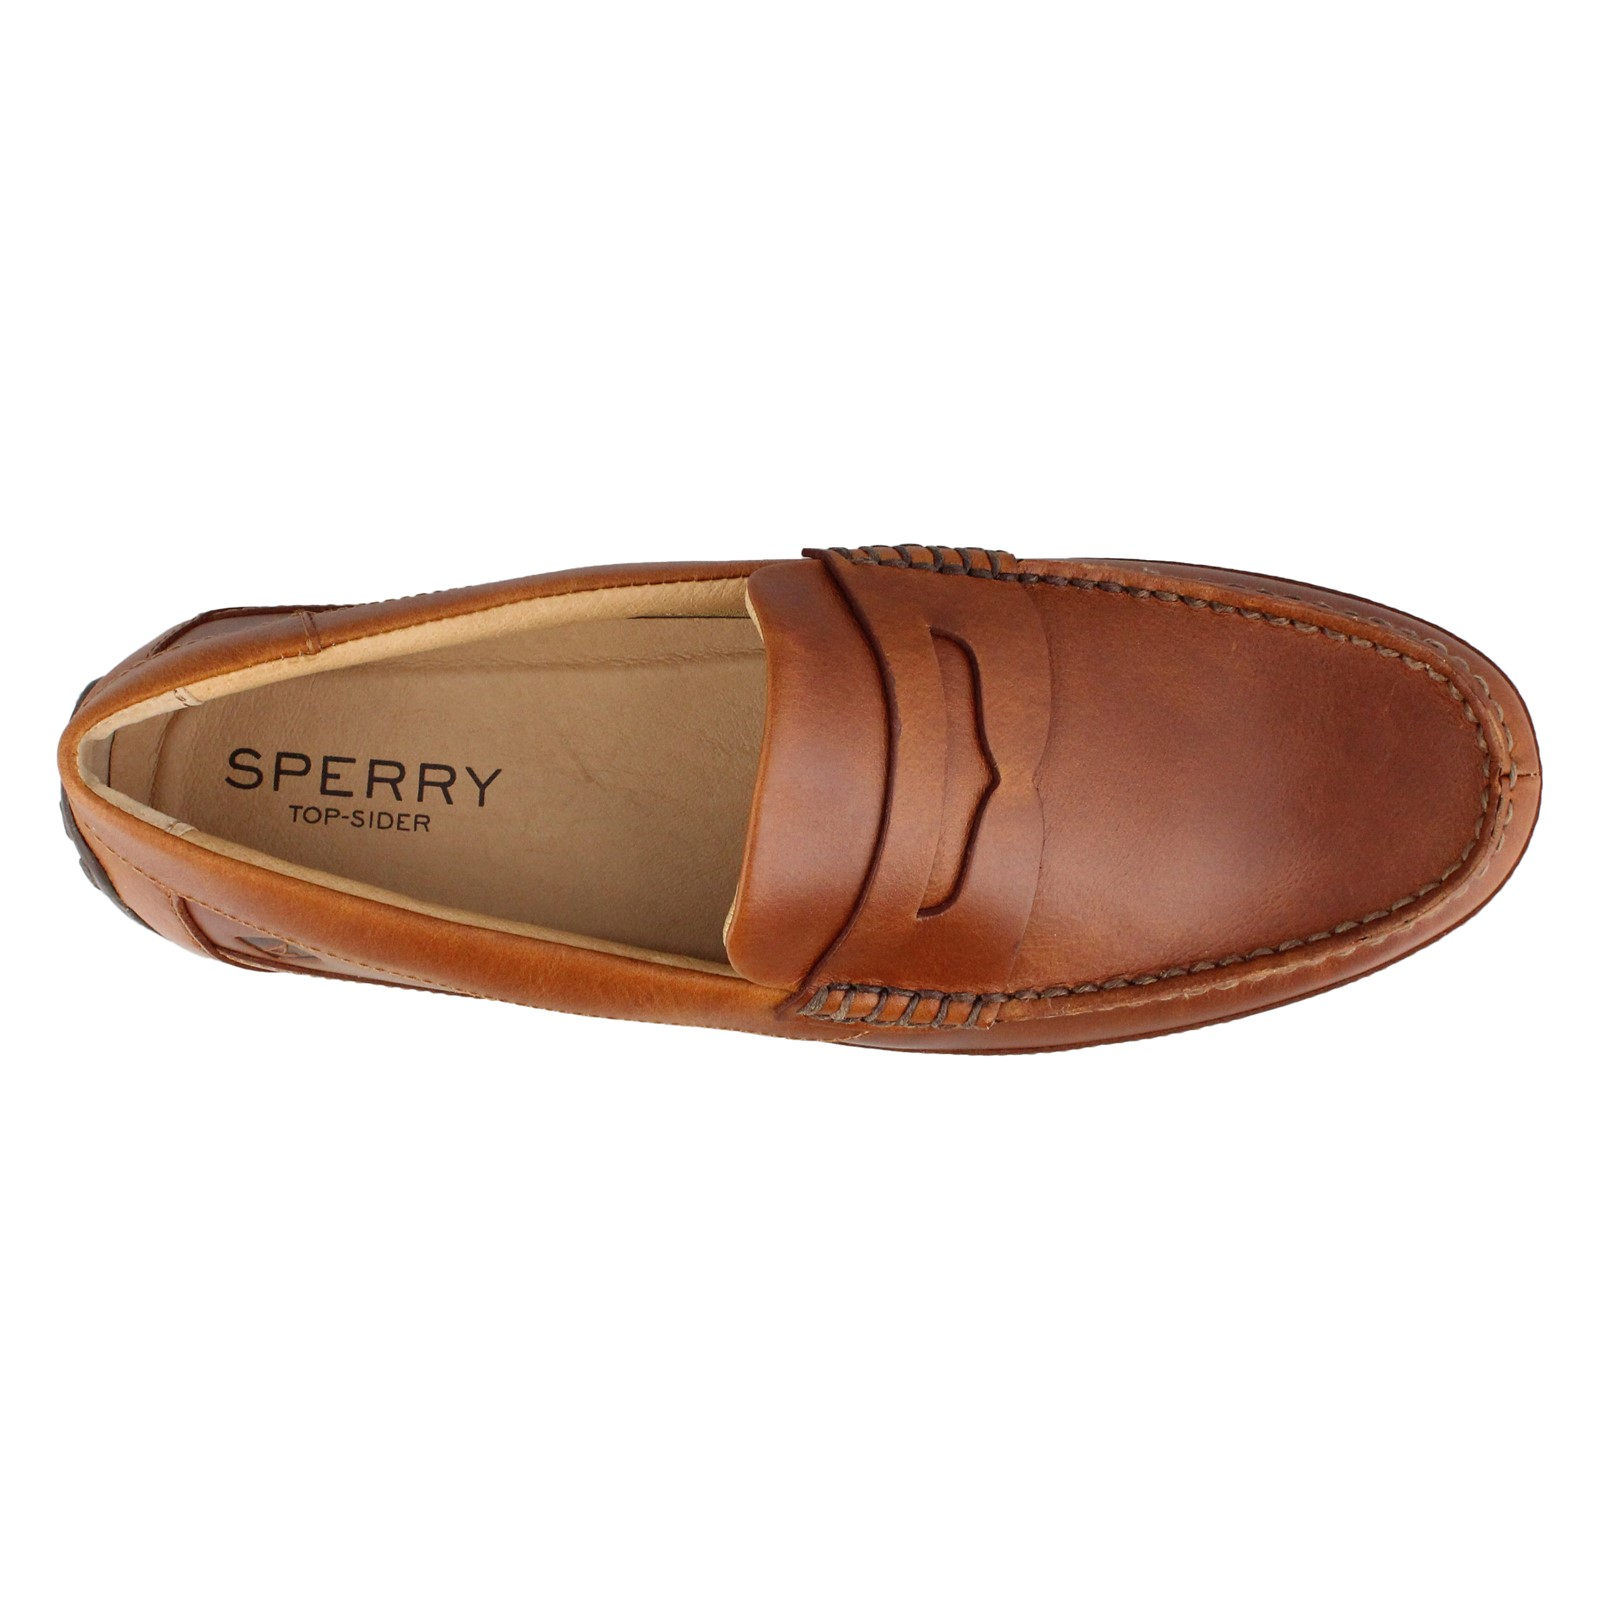 b782c6831 Home; Men's Sperry, Hampden Penny Loafers. Previous